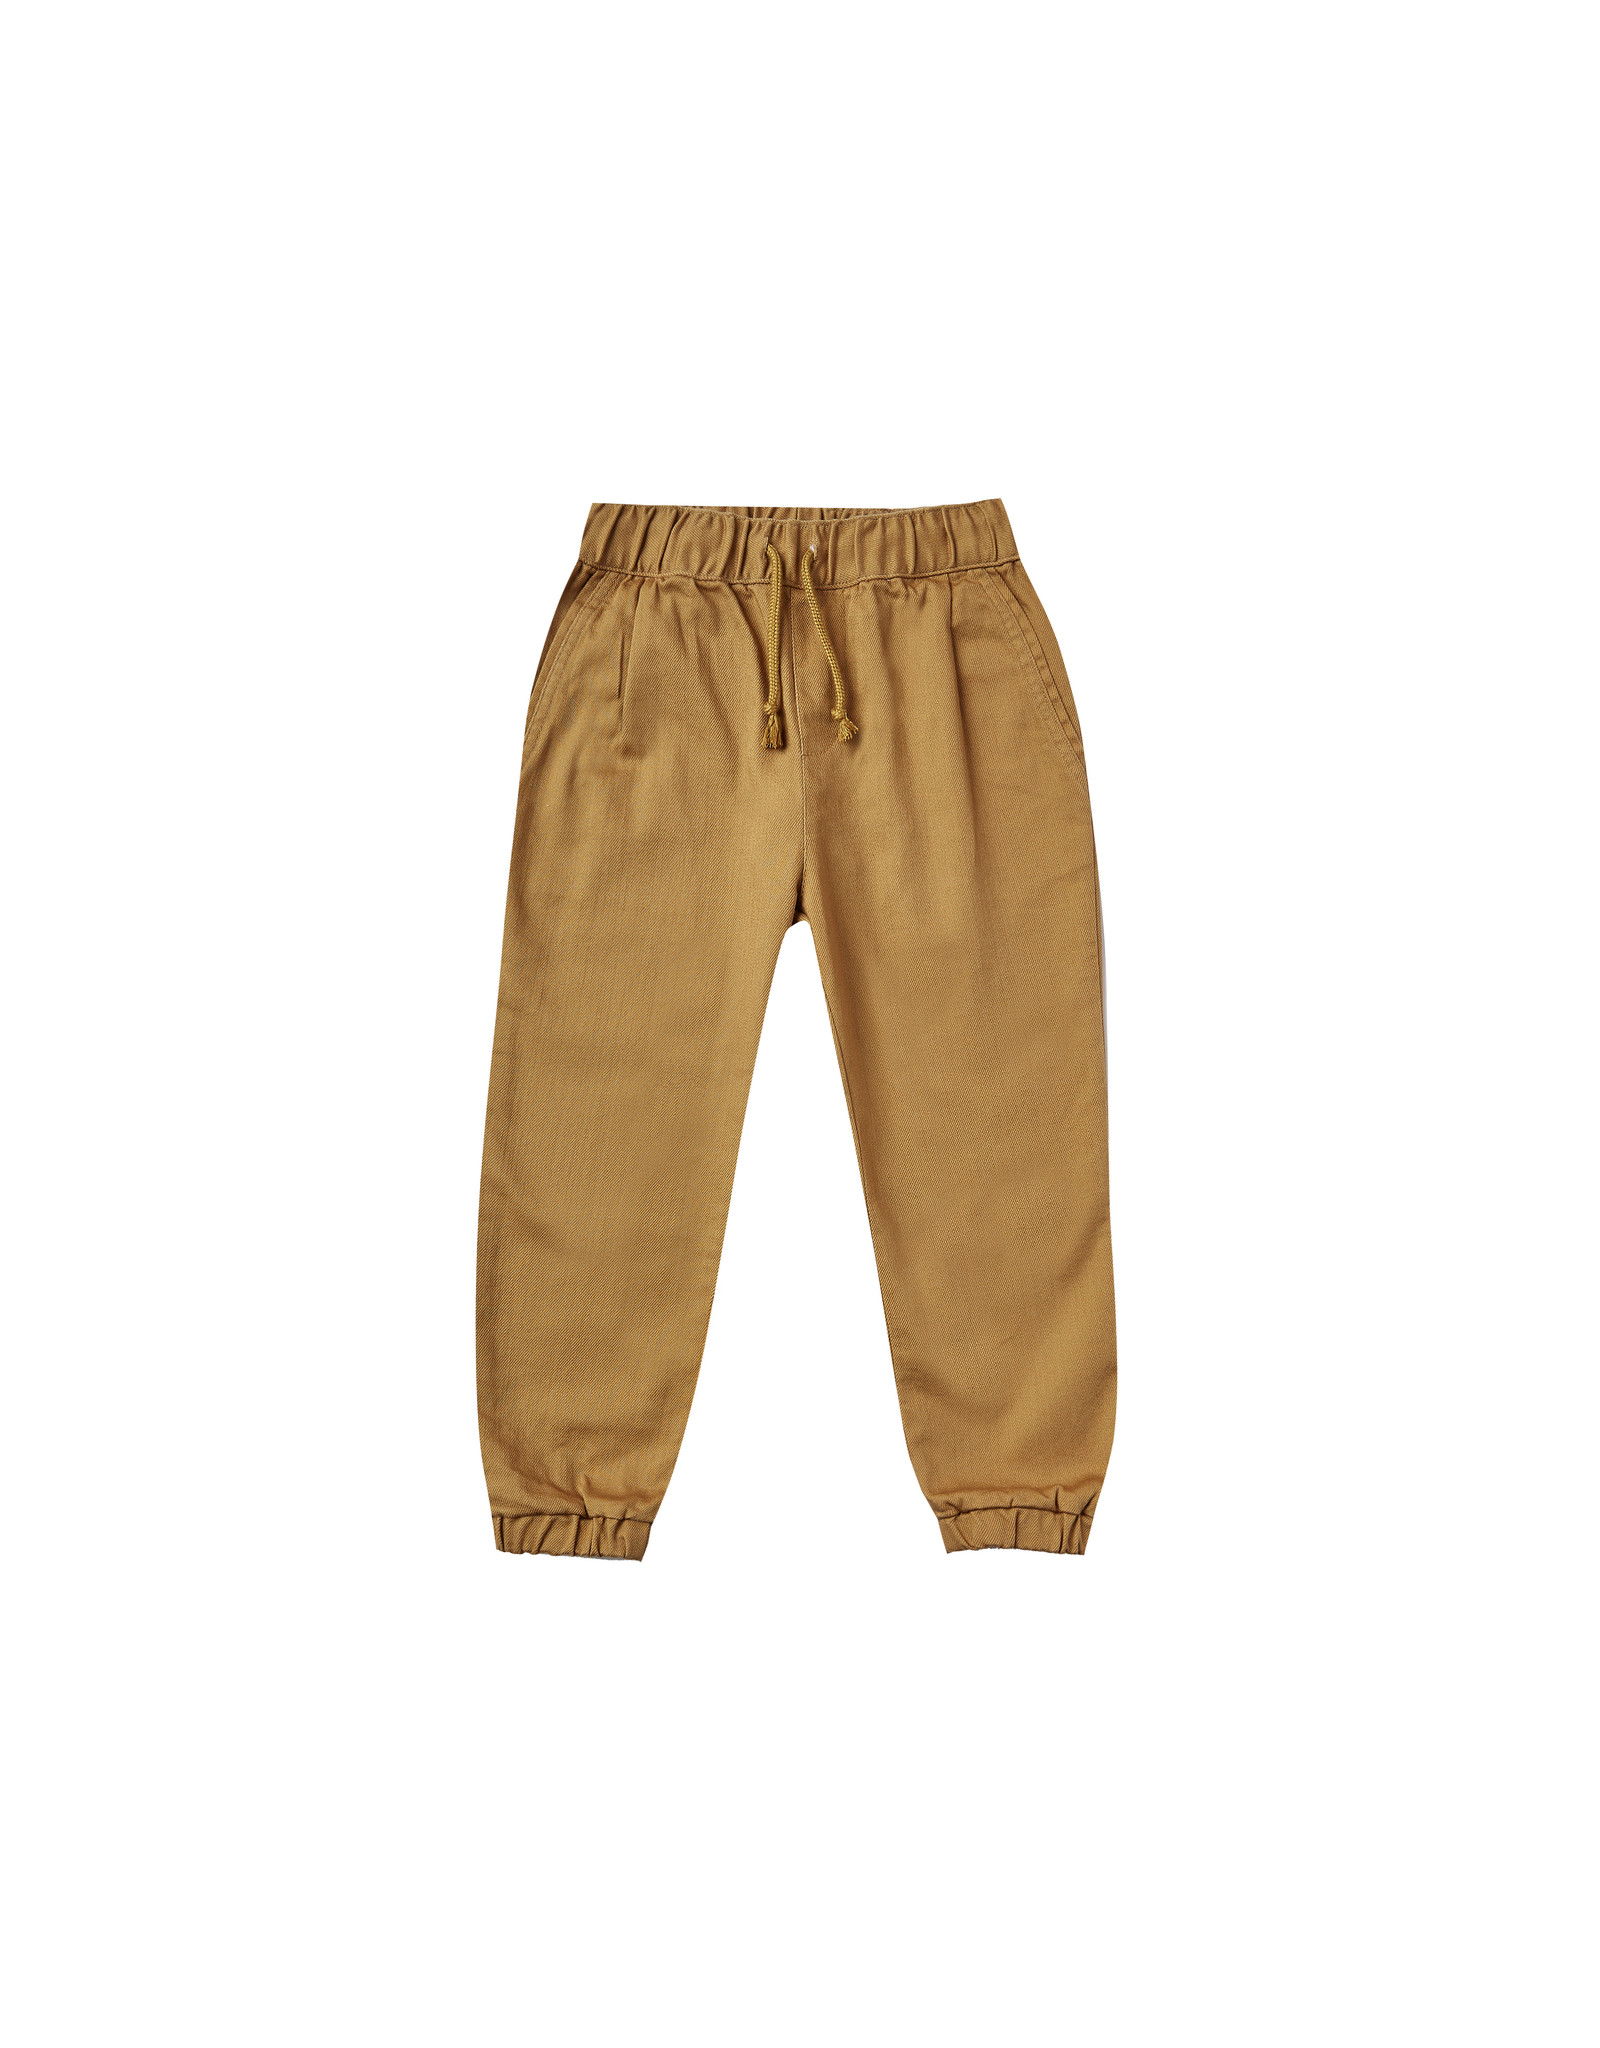 Rylee + Cru Goldenrod  Twill  Ankle  Pant 068R